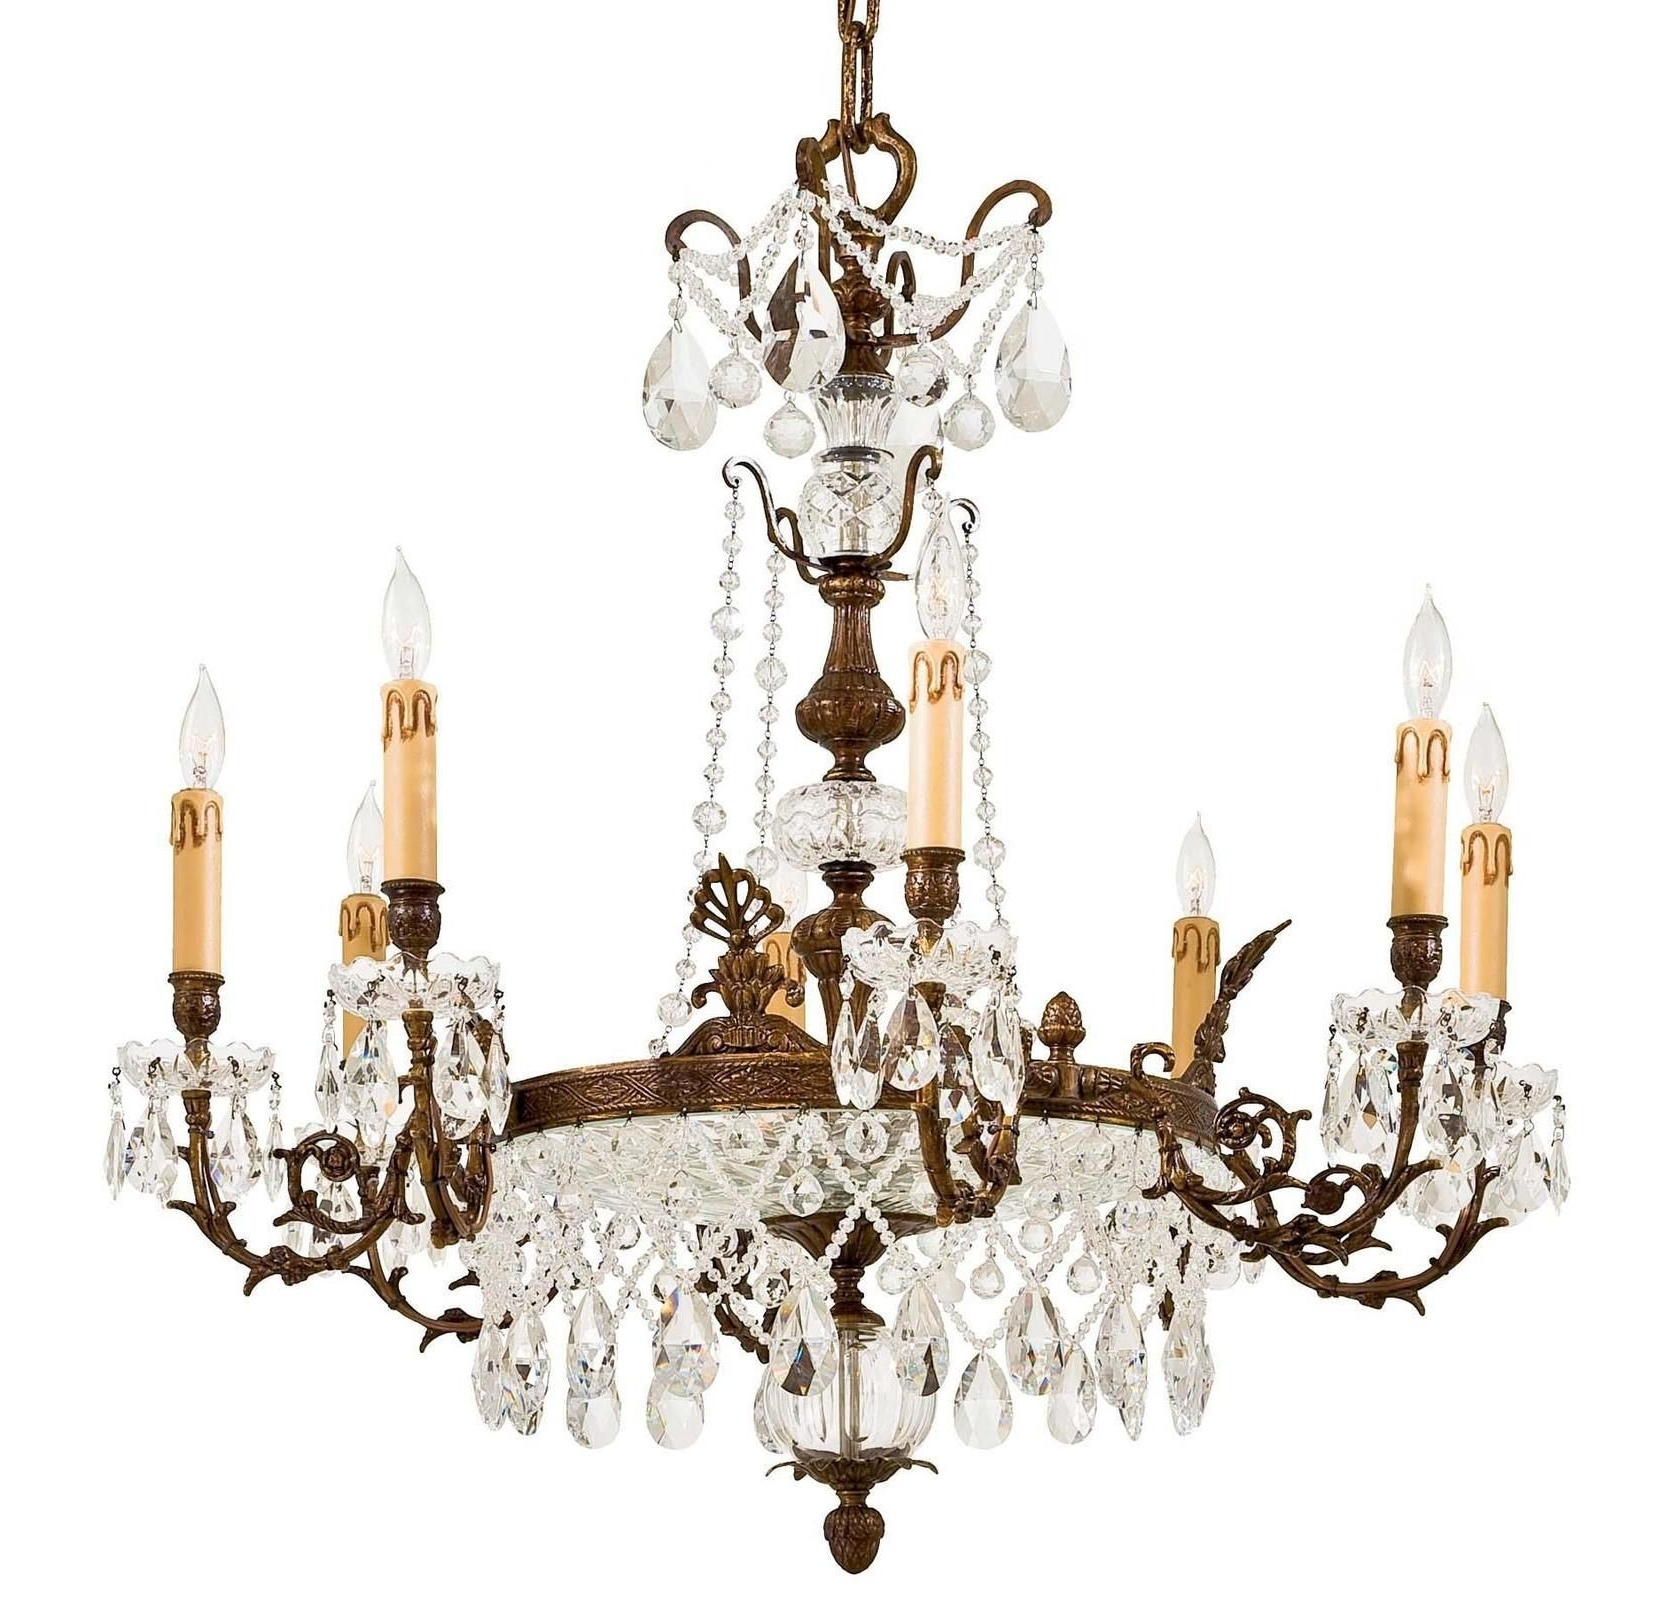 2018 Crystal Chandelier – Metropolitan ( Chandeliers Crystal Antique With Regard To Crystal Gold Chandeliers (View 13 of 20)